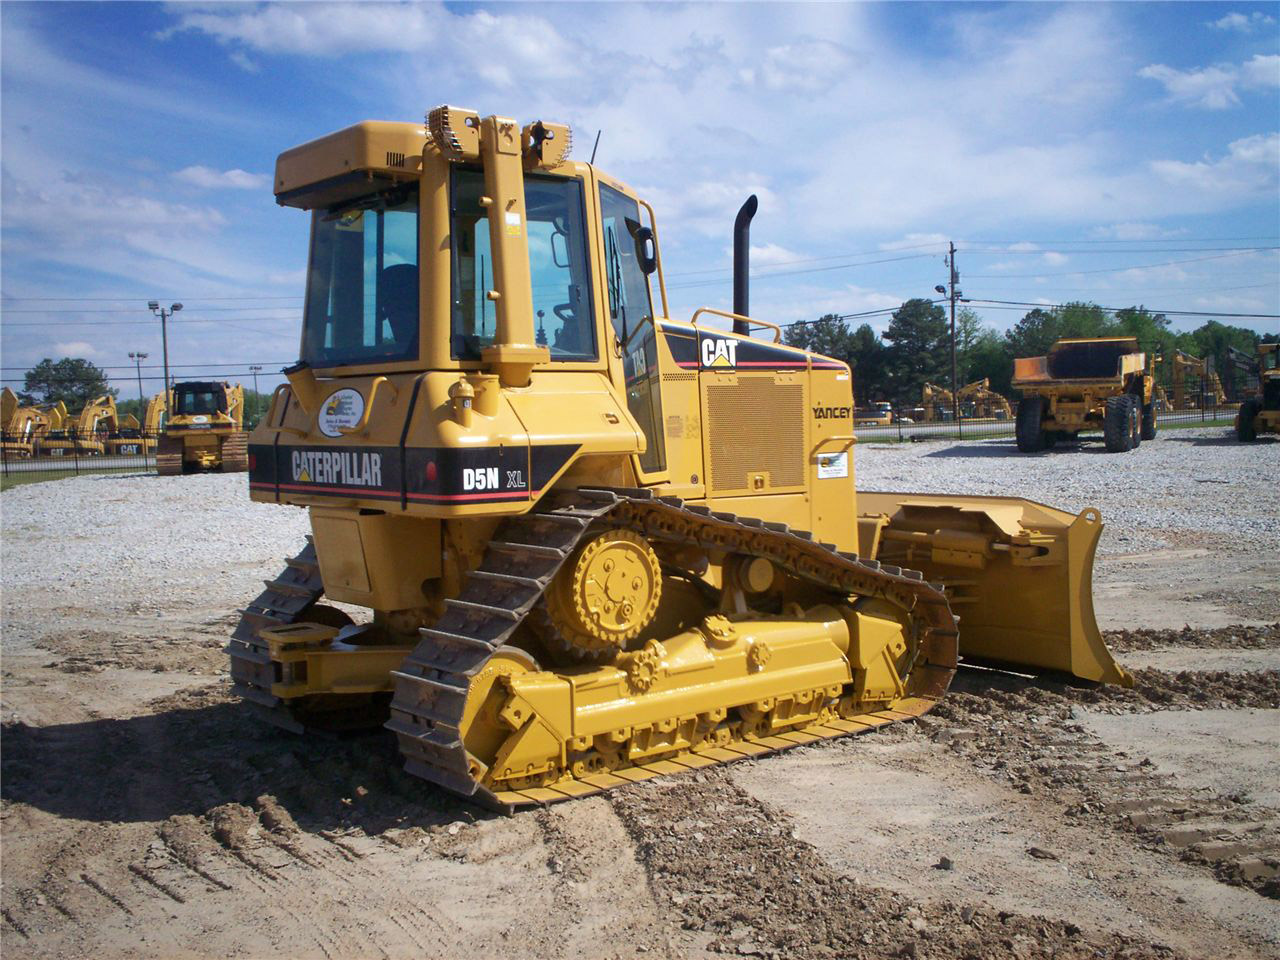 Caterpillar d5 photo - 1